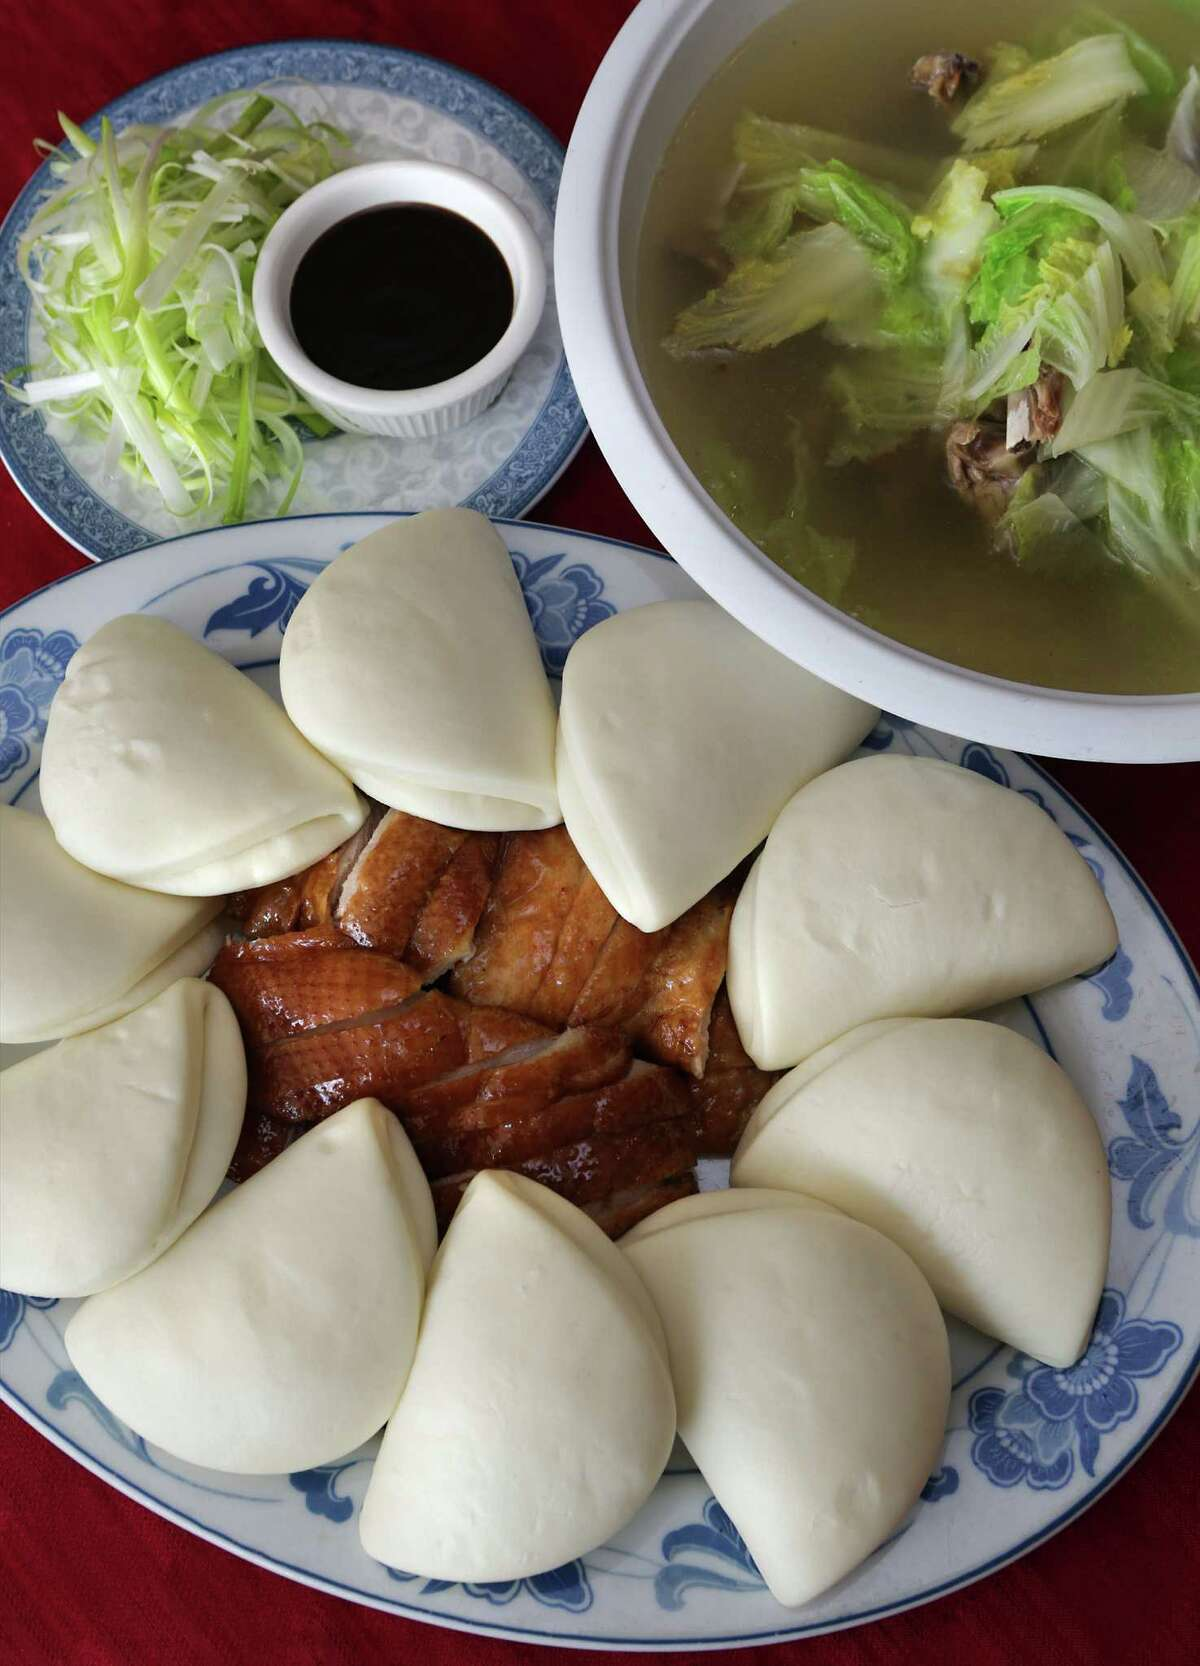 Kim Wah serves excellent authentic Chinese food, including Peking Duck served with Duck Soup.